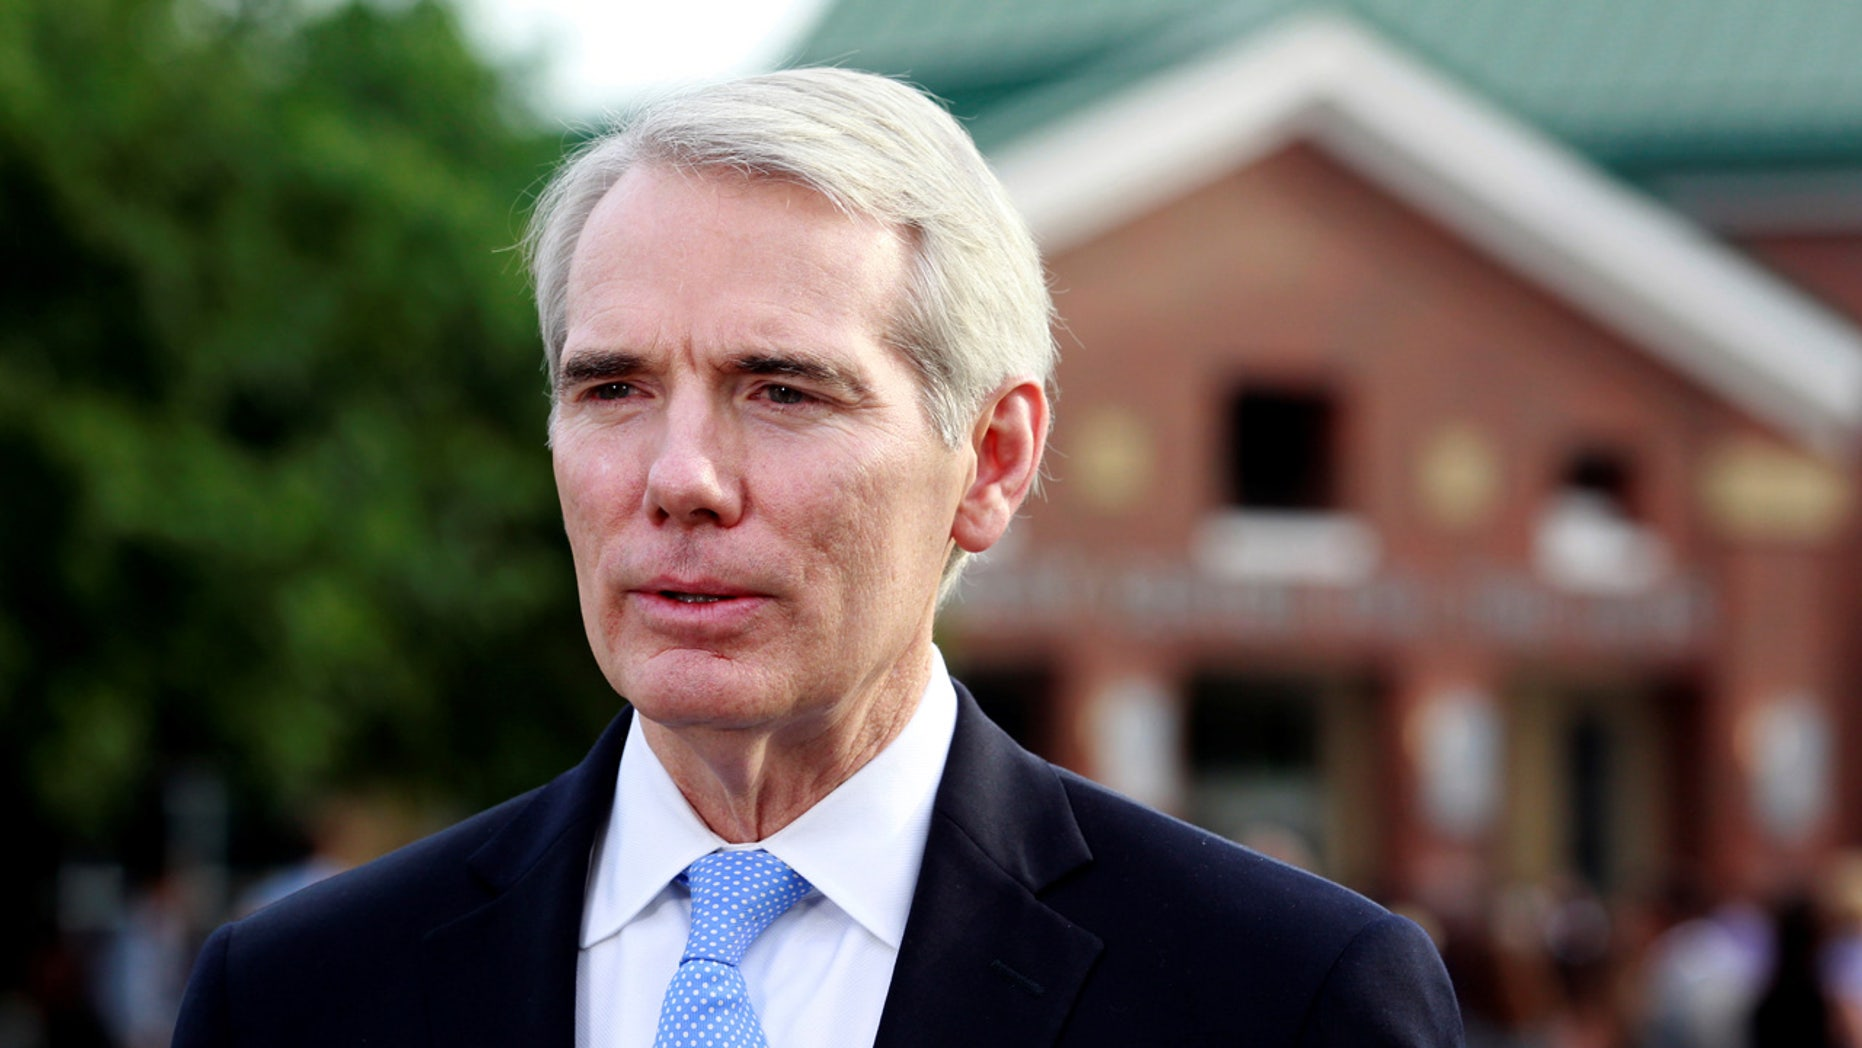 Sen. Rob Portman, R-Ohio, addresses the media outside the art center before a funeral service for Otto Warmbier, who died after his release from North Korea, at Wyoming High School in Wyoming, Ohio, U.S. June 22, 2017.